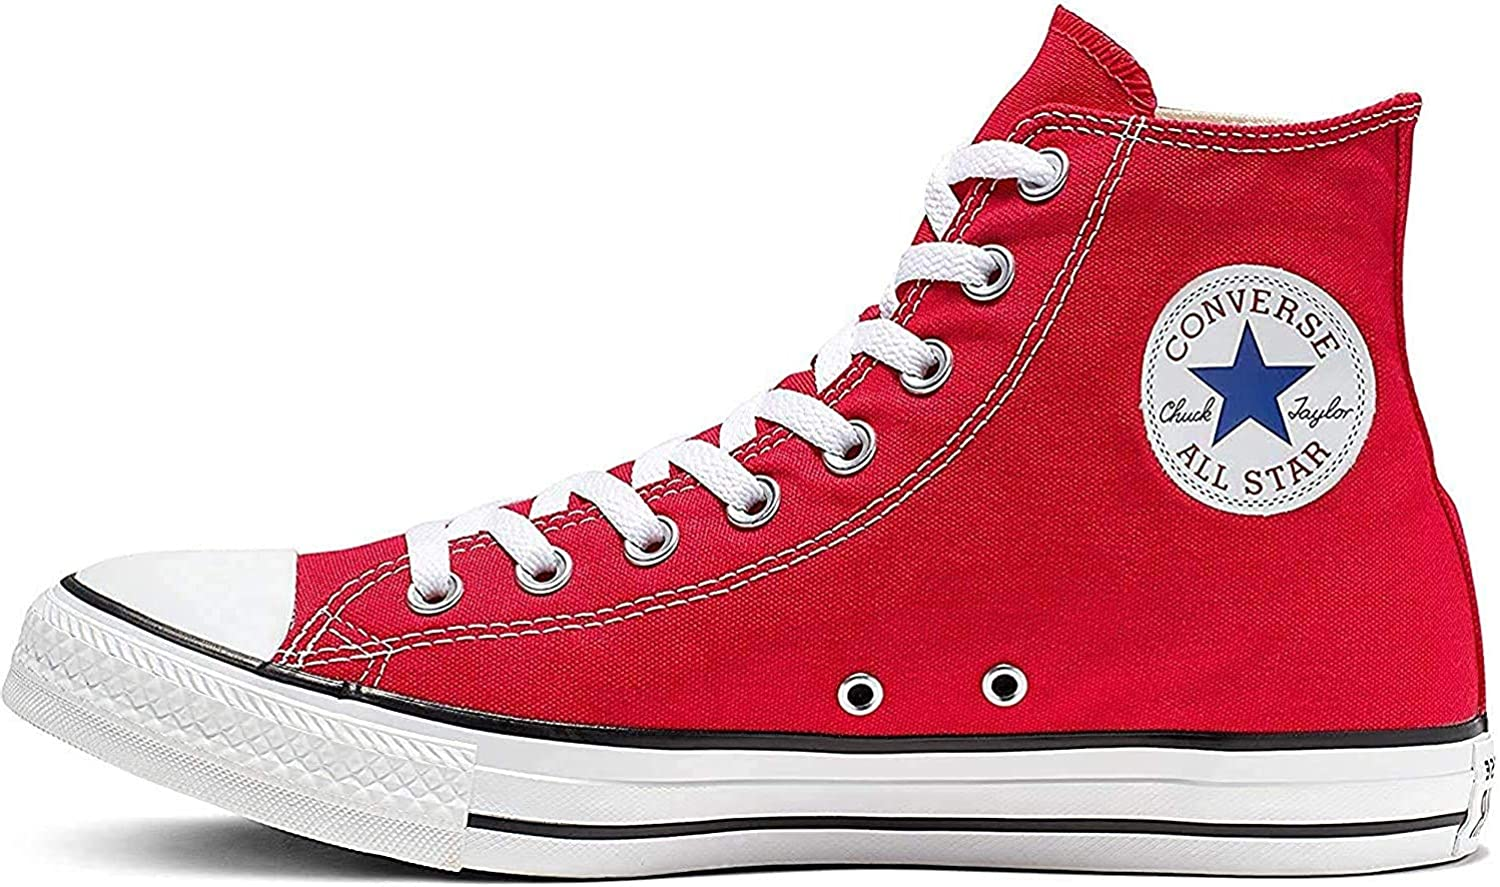 Converse All Star CT Infants Baby Toddlers Canvas Red/White 7j232